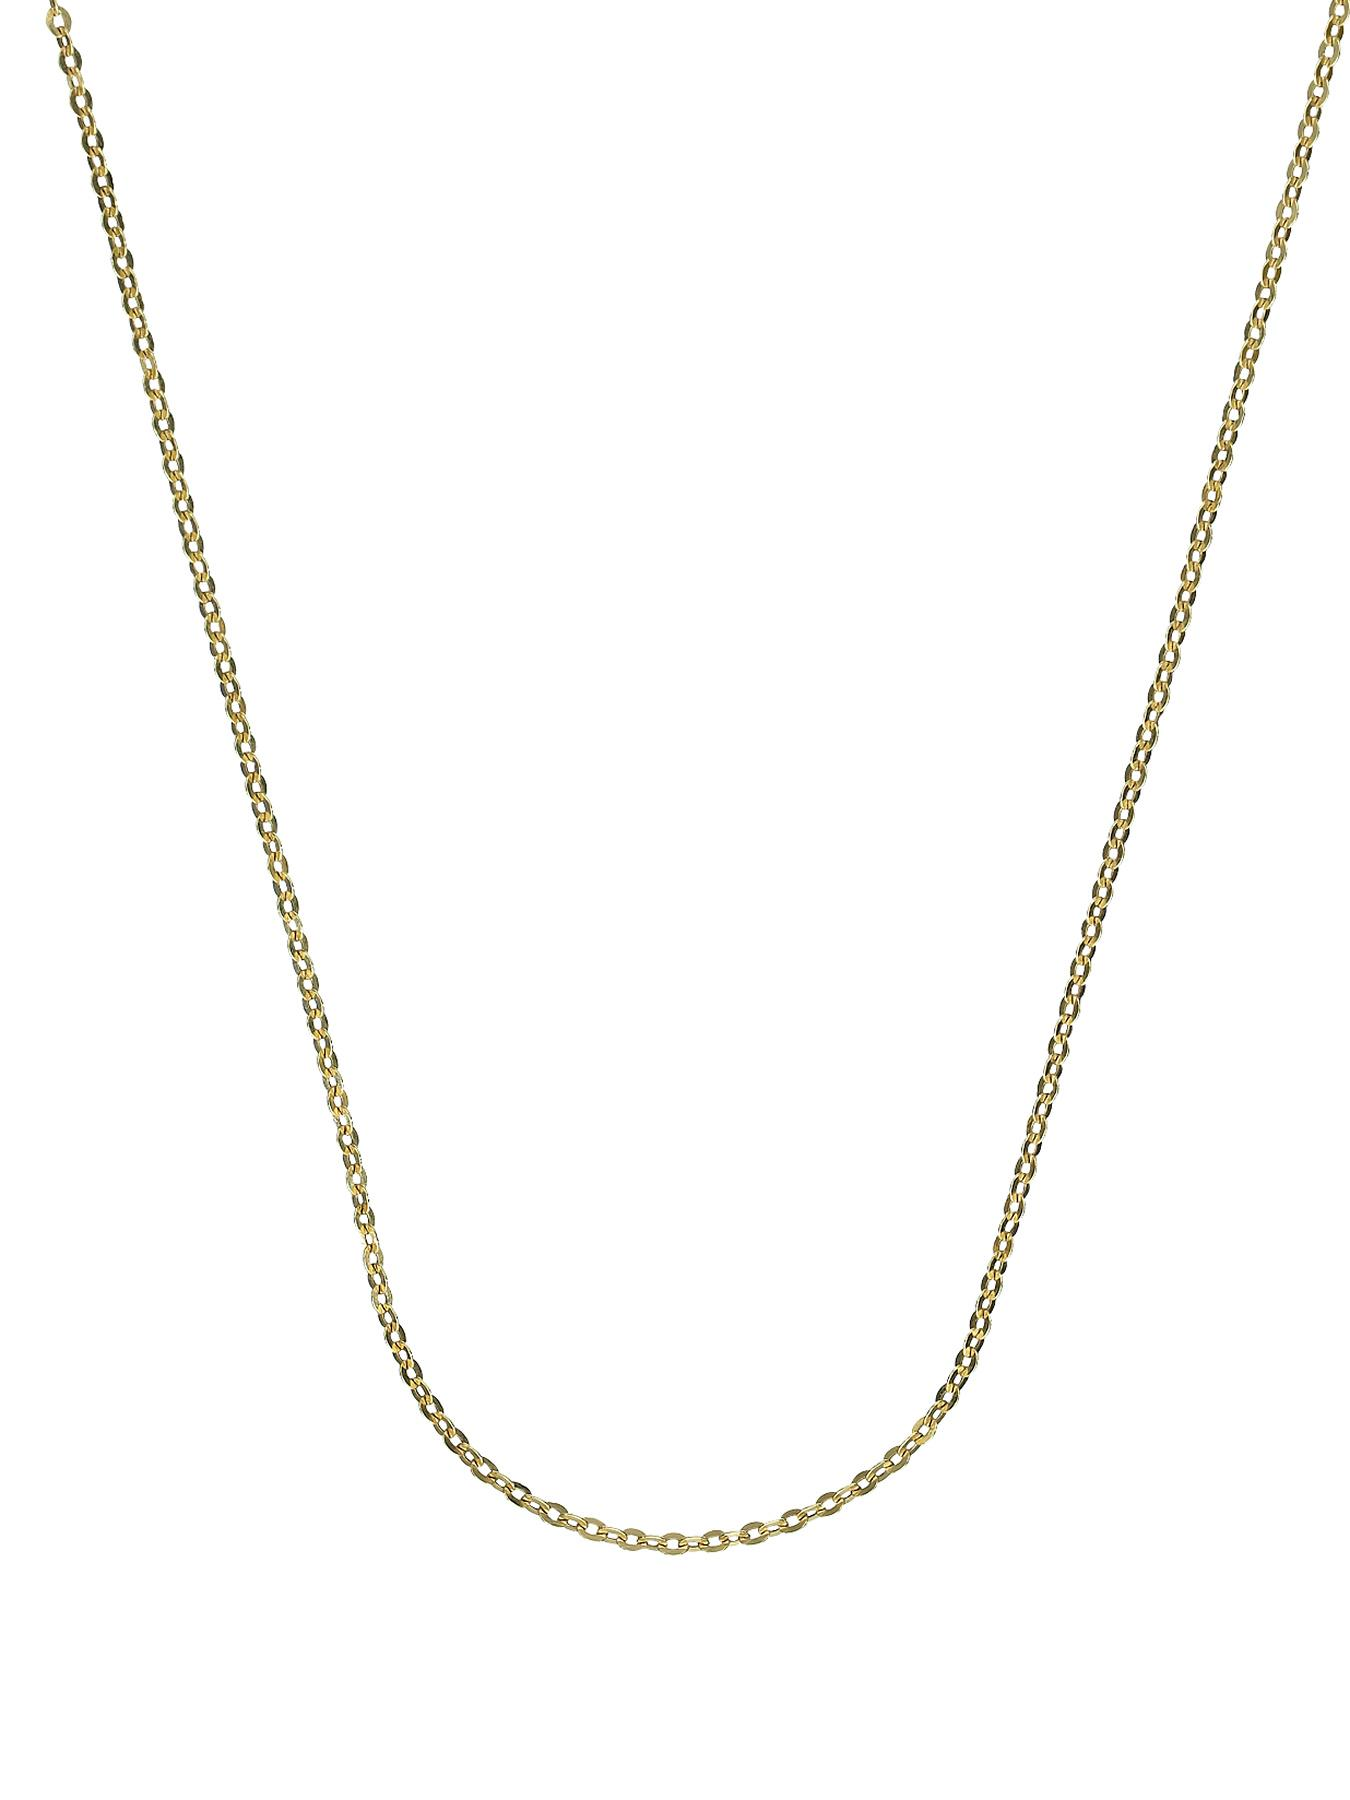 Sterling Silver and 9 Carat Yellow Gold Bonded Chain 16 inch